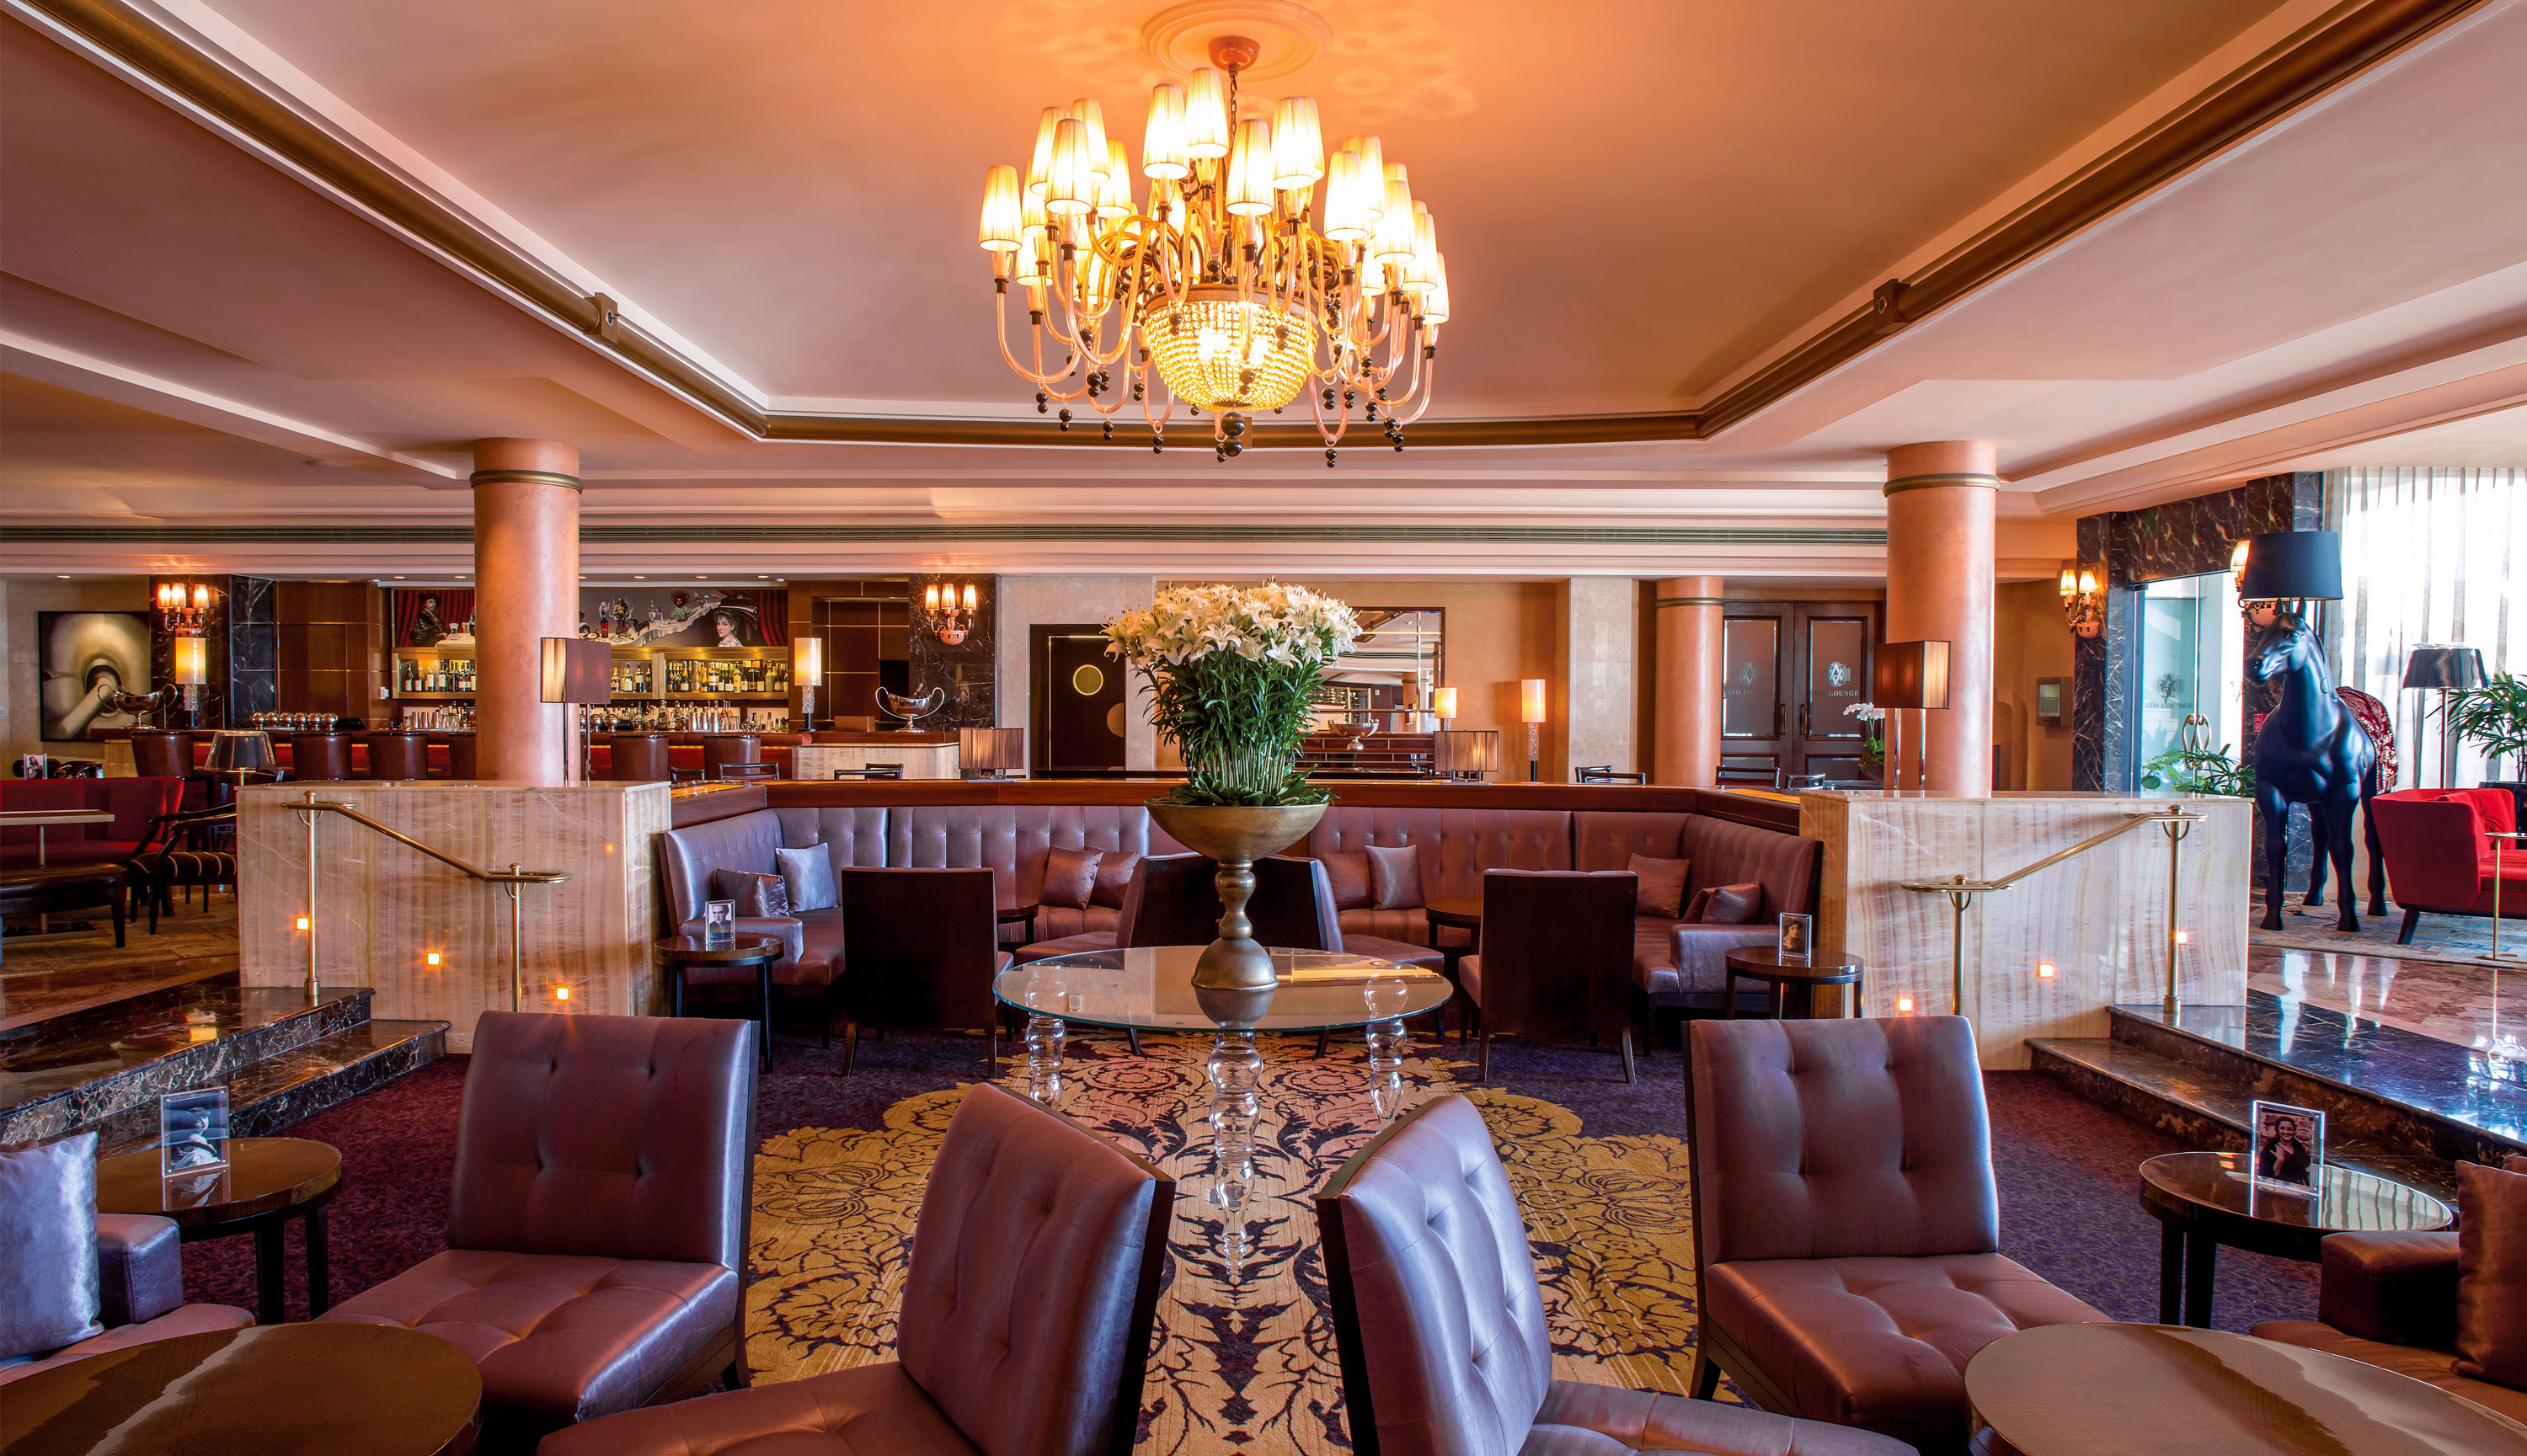 The elegant lounge at the Condado Vanderbilt hotel includes leather upholstery, marble columns and an ornate chandelier.